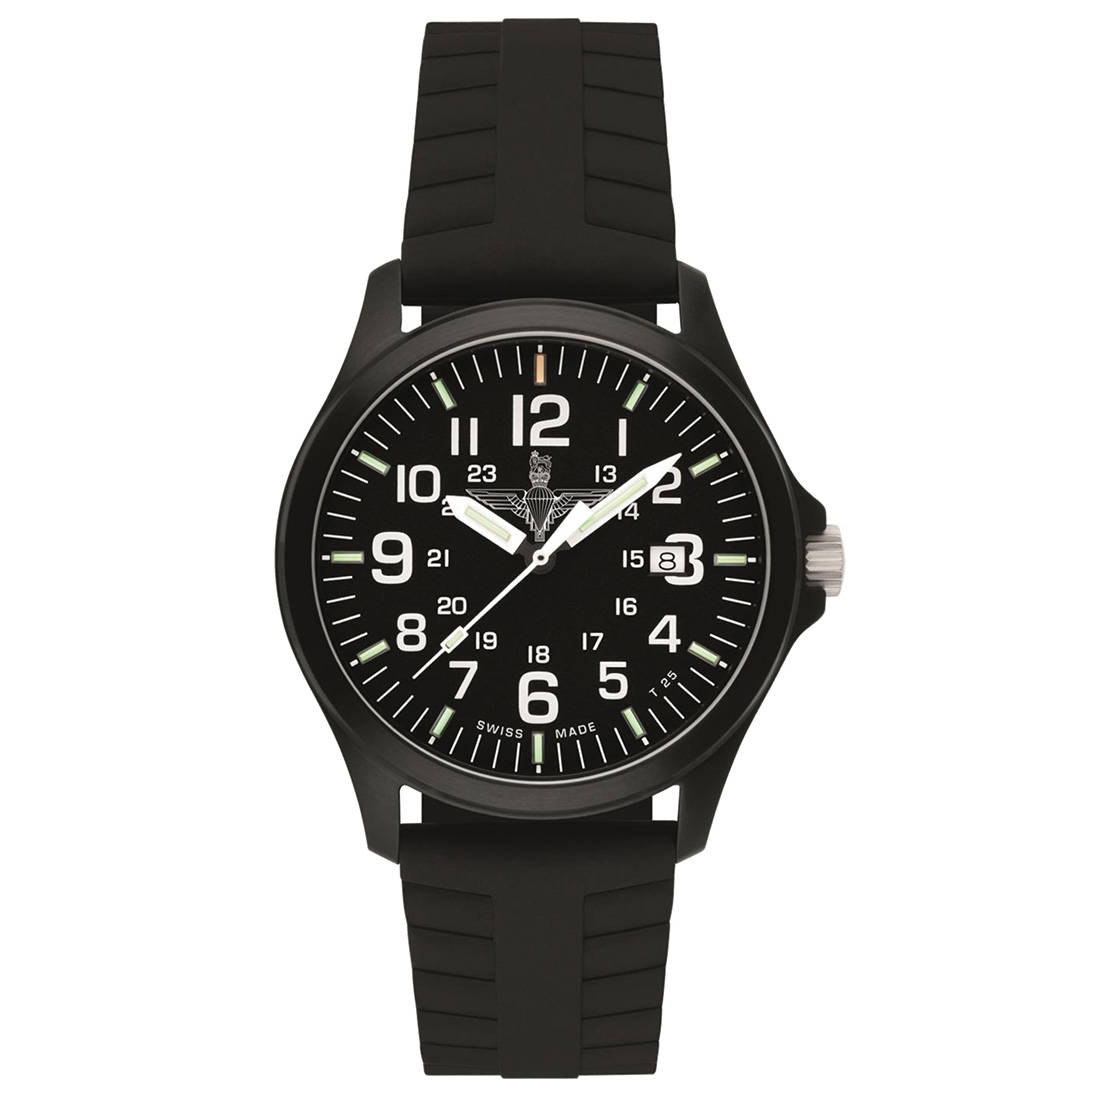 Officer Pro Watch - Para Edition